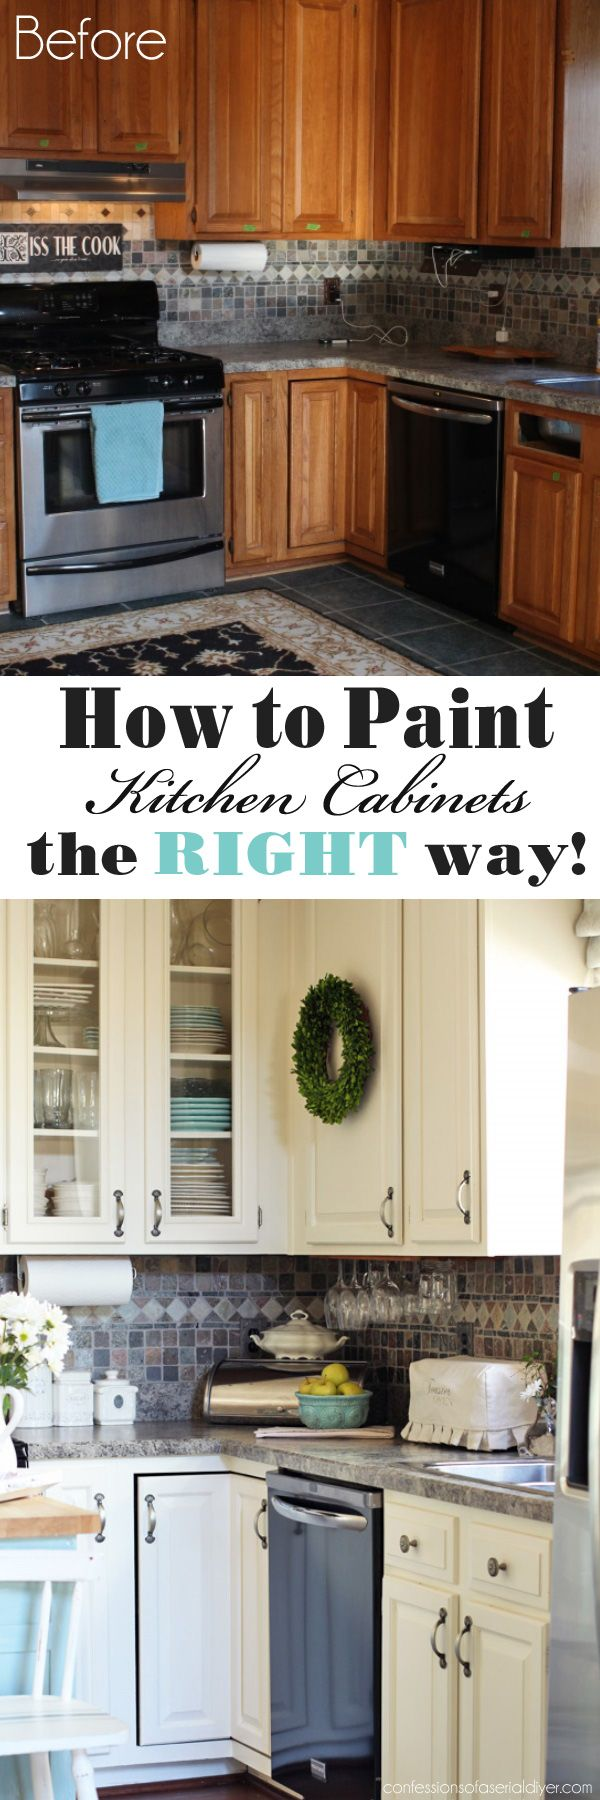 Elegant How To Paint Kitchen Cabinets The RIGHT Way From Confessions Of A Serial  Do It